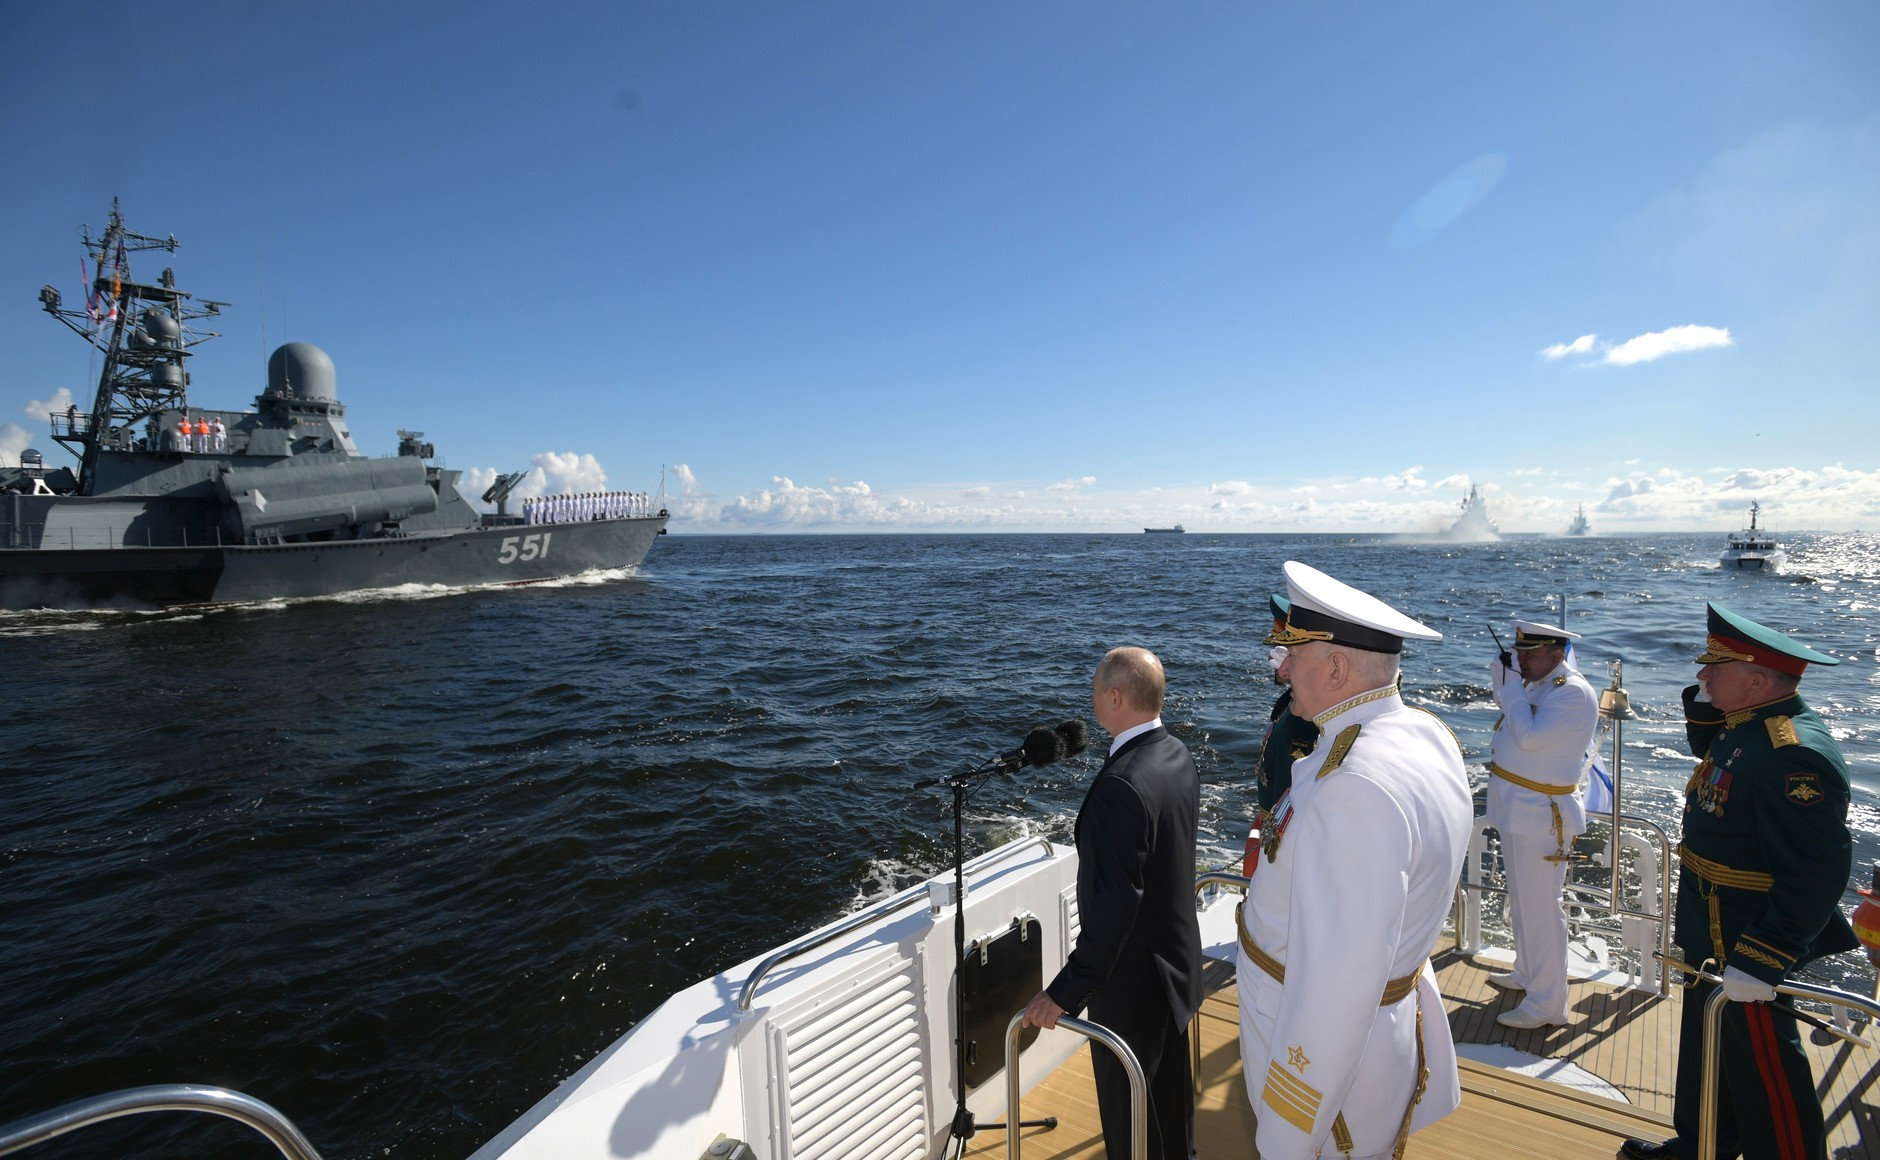 Putin Reveals Grandiose Plans for Russia's Navy